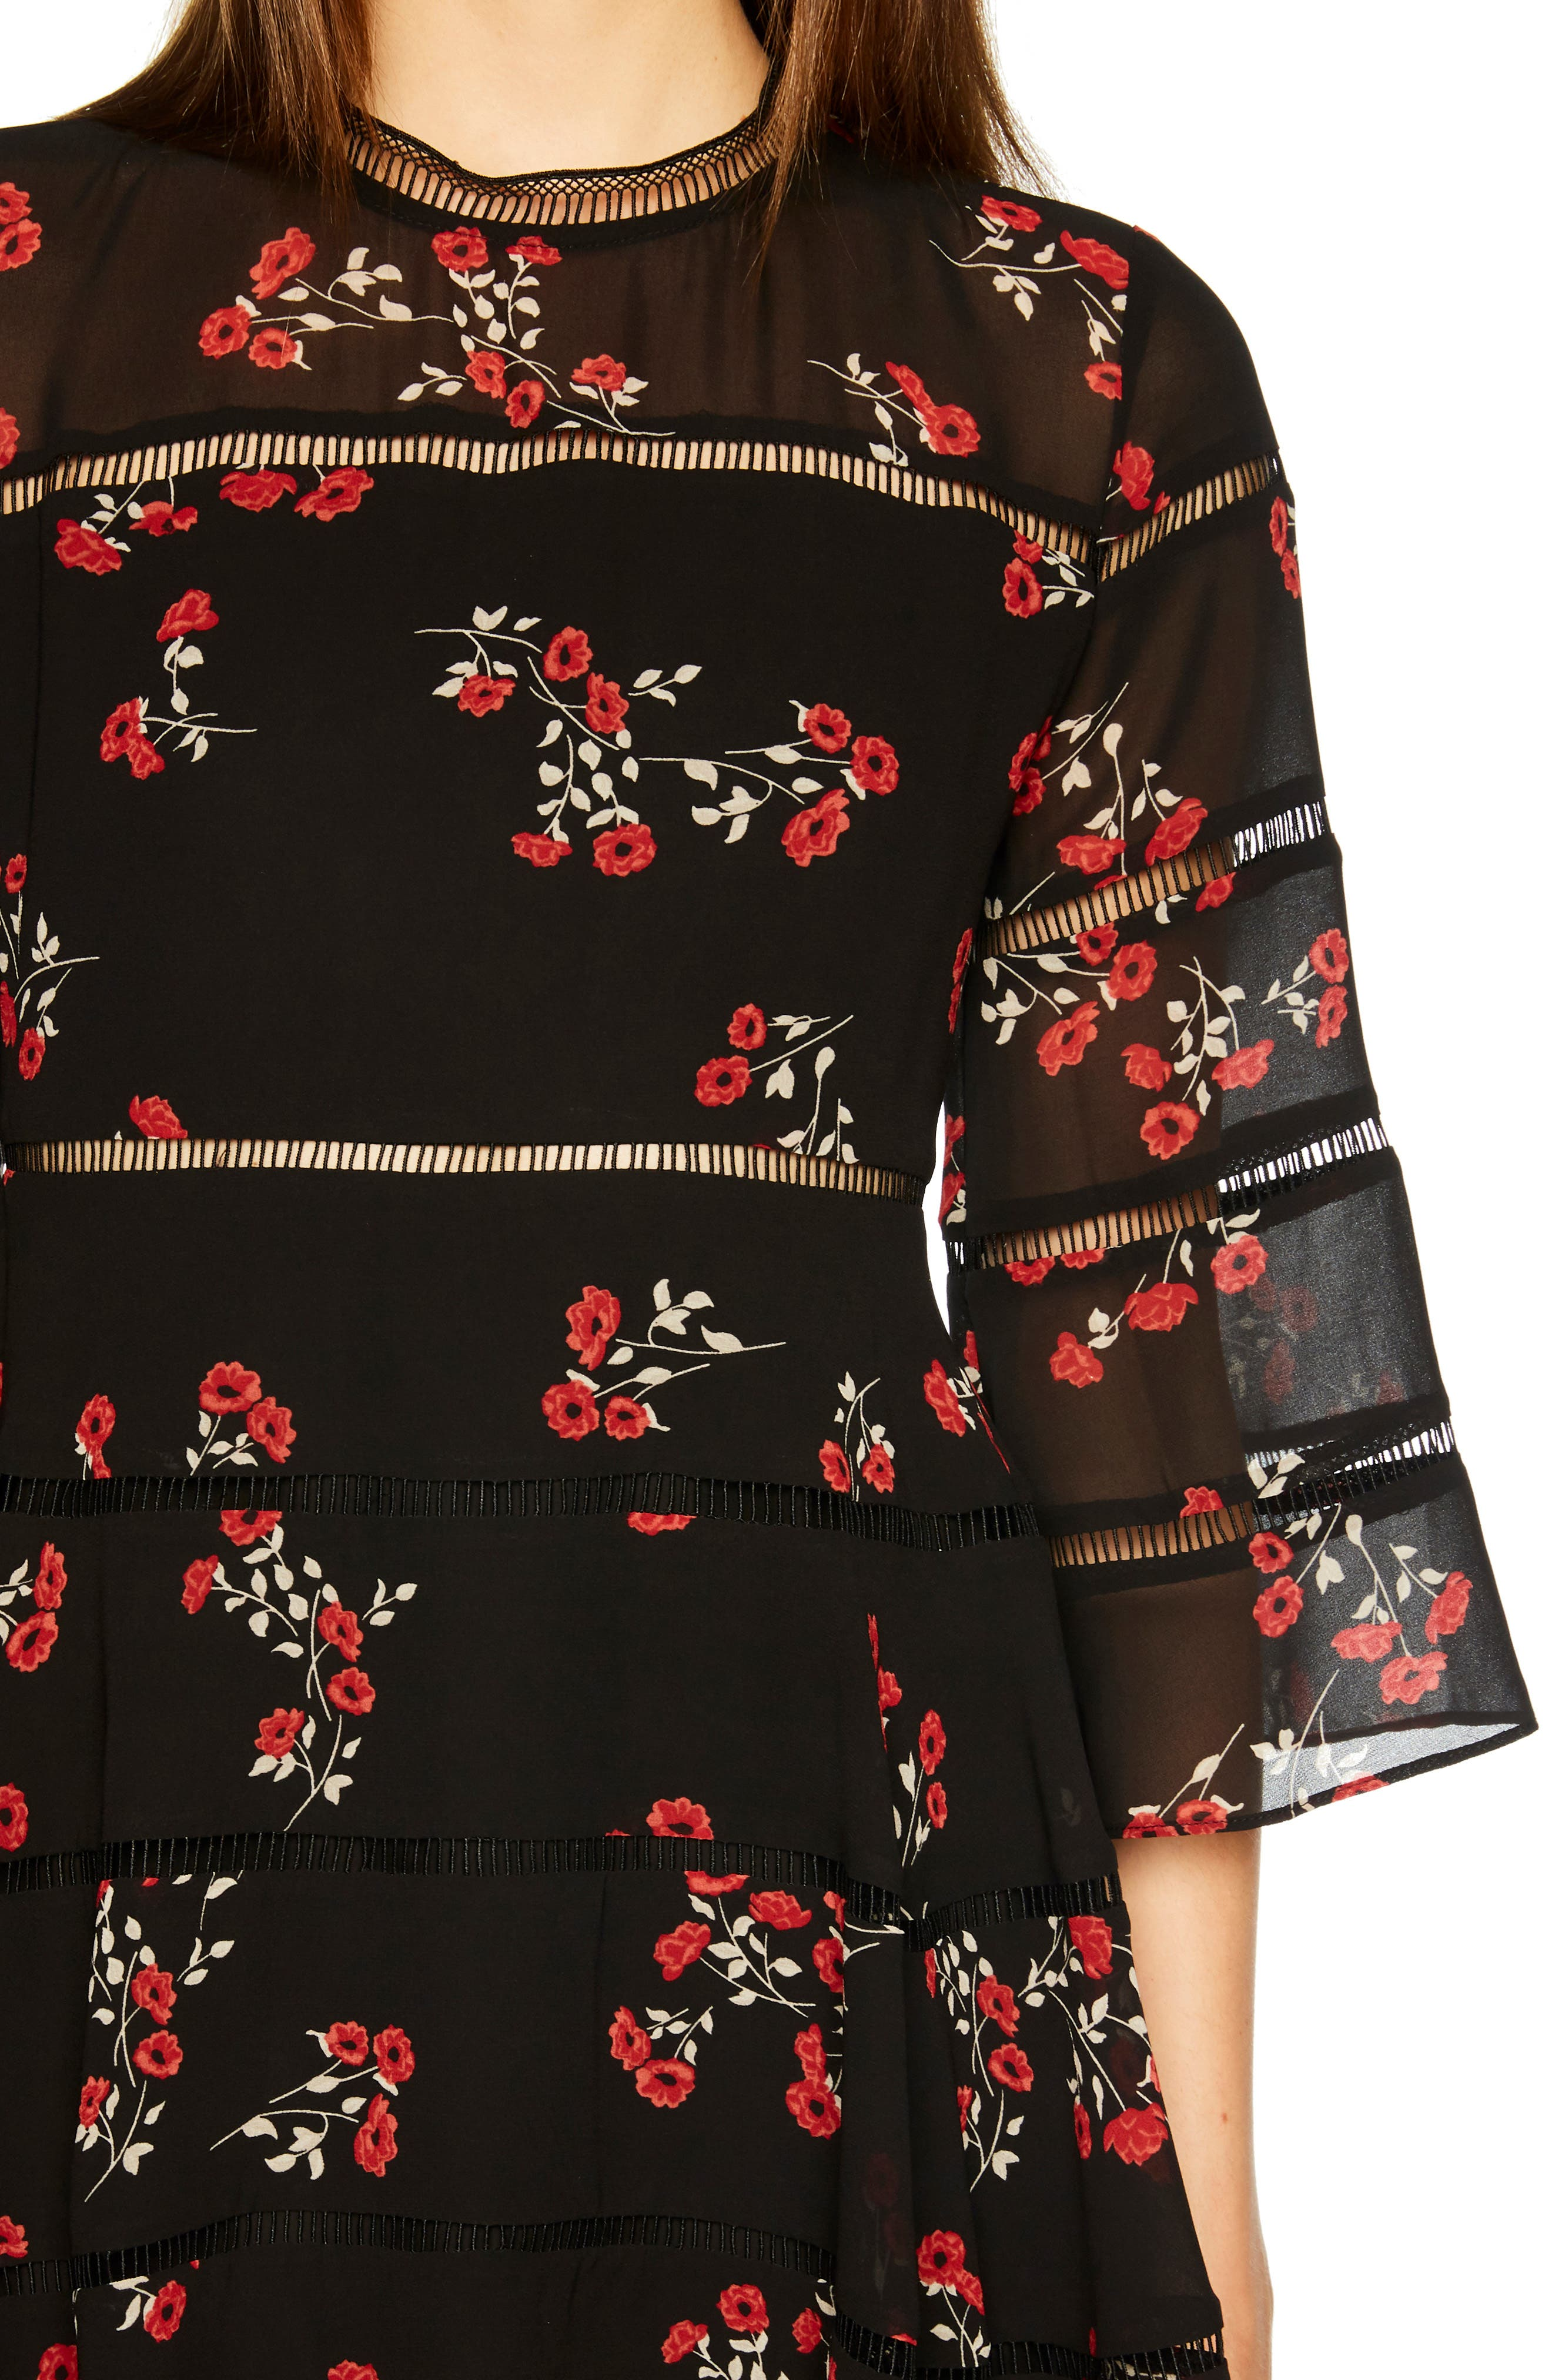 Poppy Print Dress,                             Alternate thumbnail 4, color,                             DITSY FLORAL